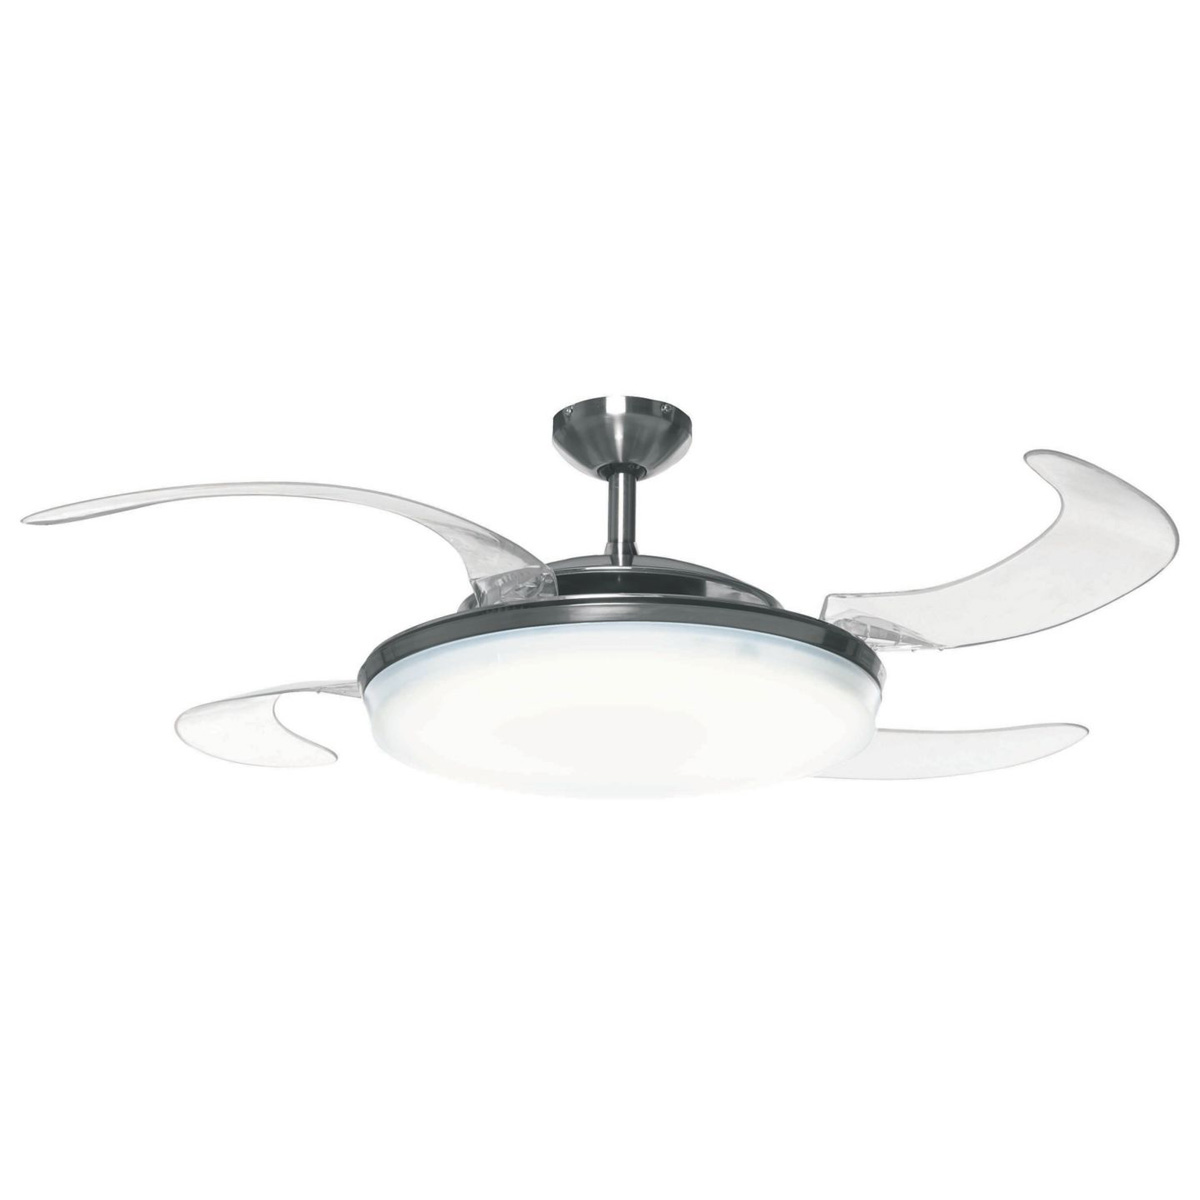 pendant light ceiling fan photo - 2